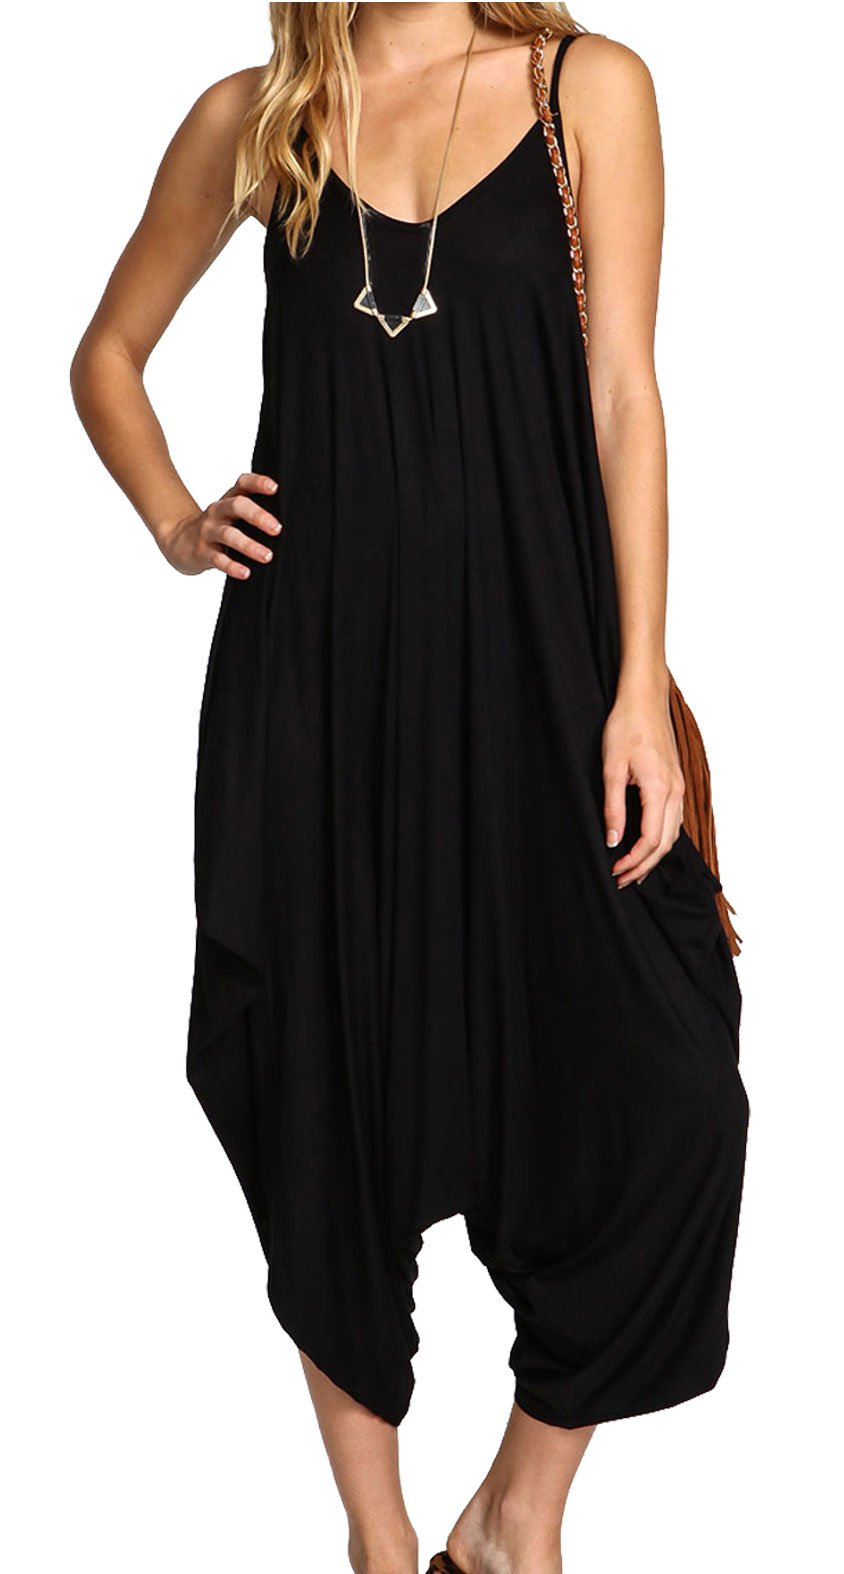 Re Tech UK Ladies Baggy Harem Jumpsuit Romper Sleeveless All in One V-Neck Cami Playsuit